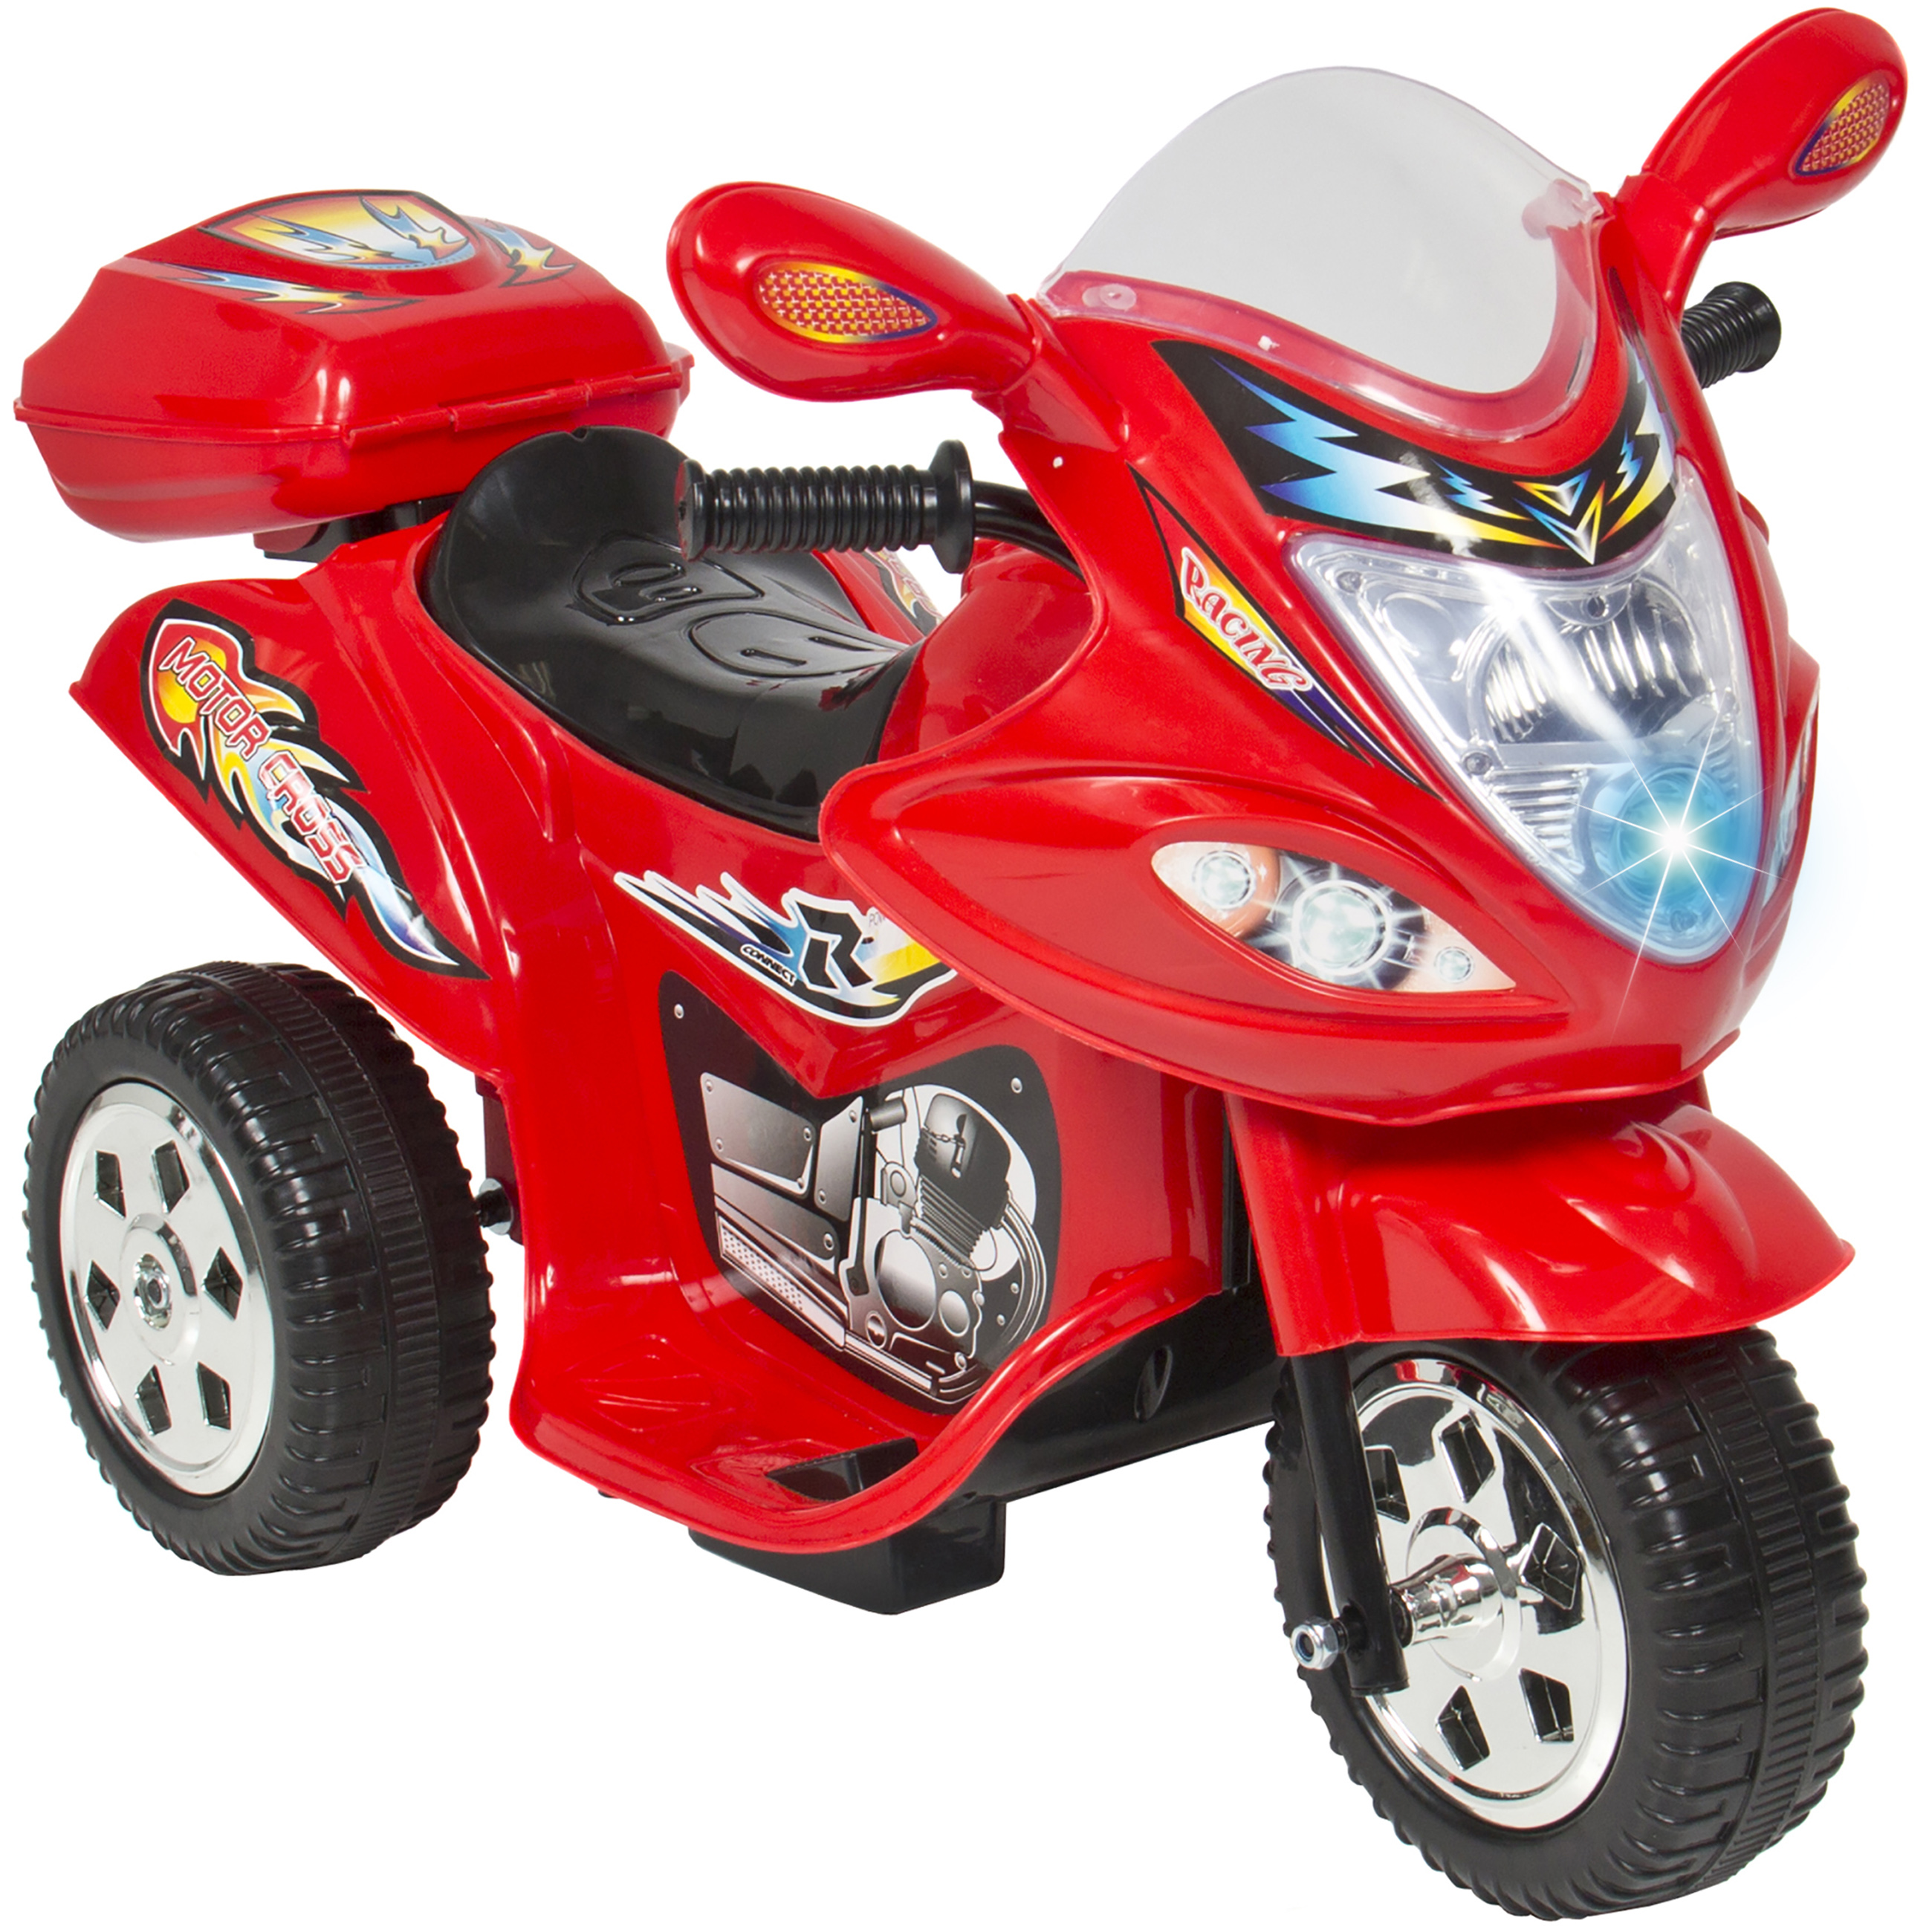 Click here to buy Kids Ride On Motorcycle 6V Toy Battery Powered Electric 3 Wheel Power Bicycle Red.